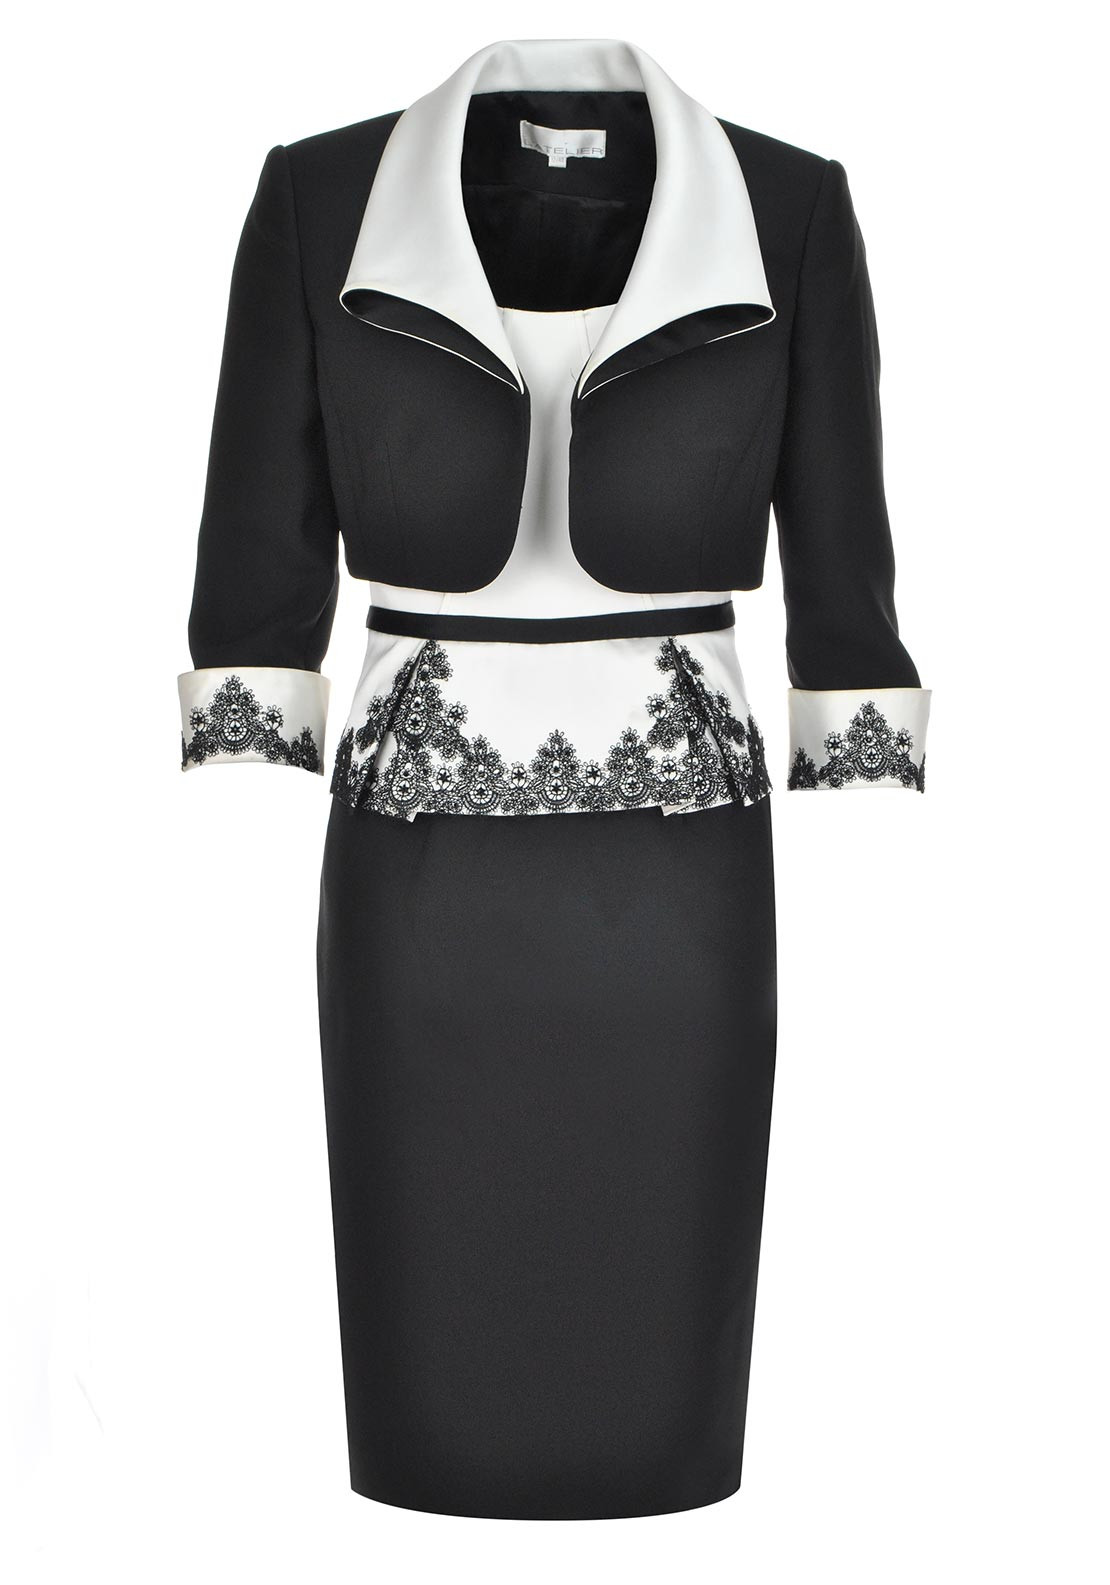 L'Atelier Occasion Wear Lace Embellished Dress and Jacket, Black and Ivory